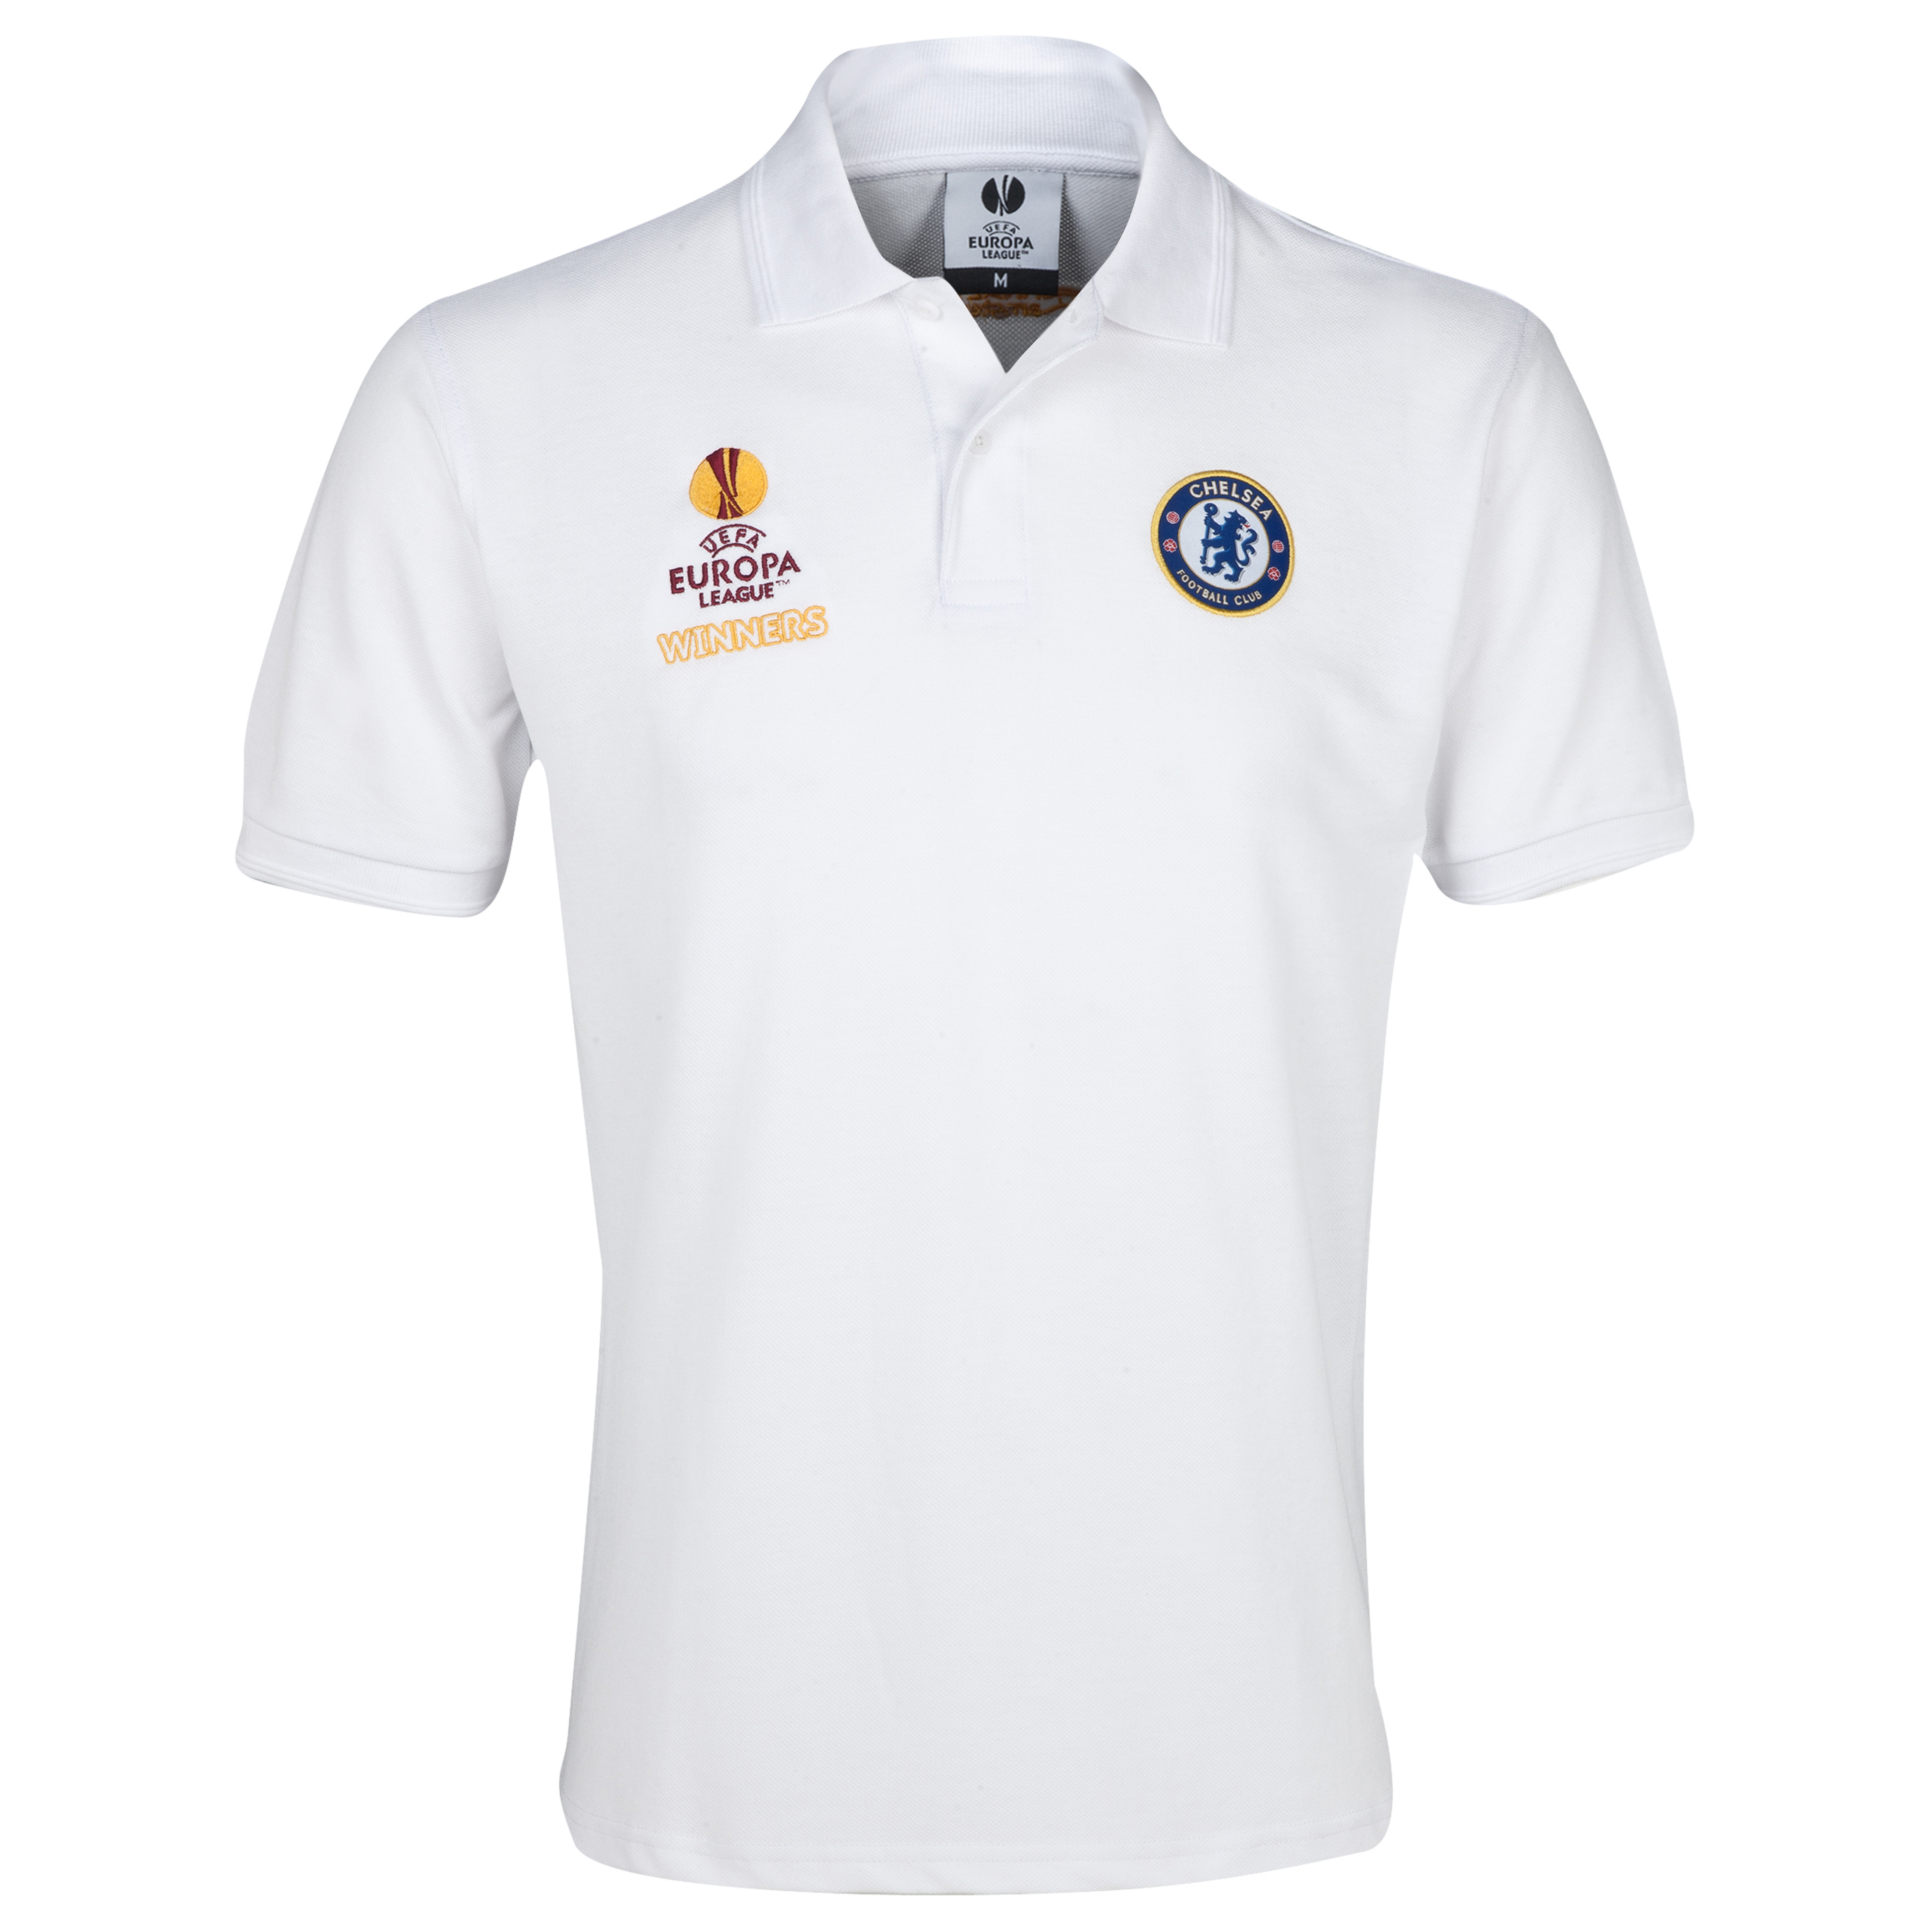 Chelsea UEFA Europa League Winners 2013 Polo White